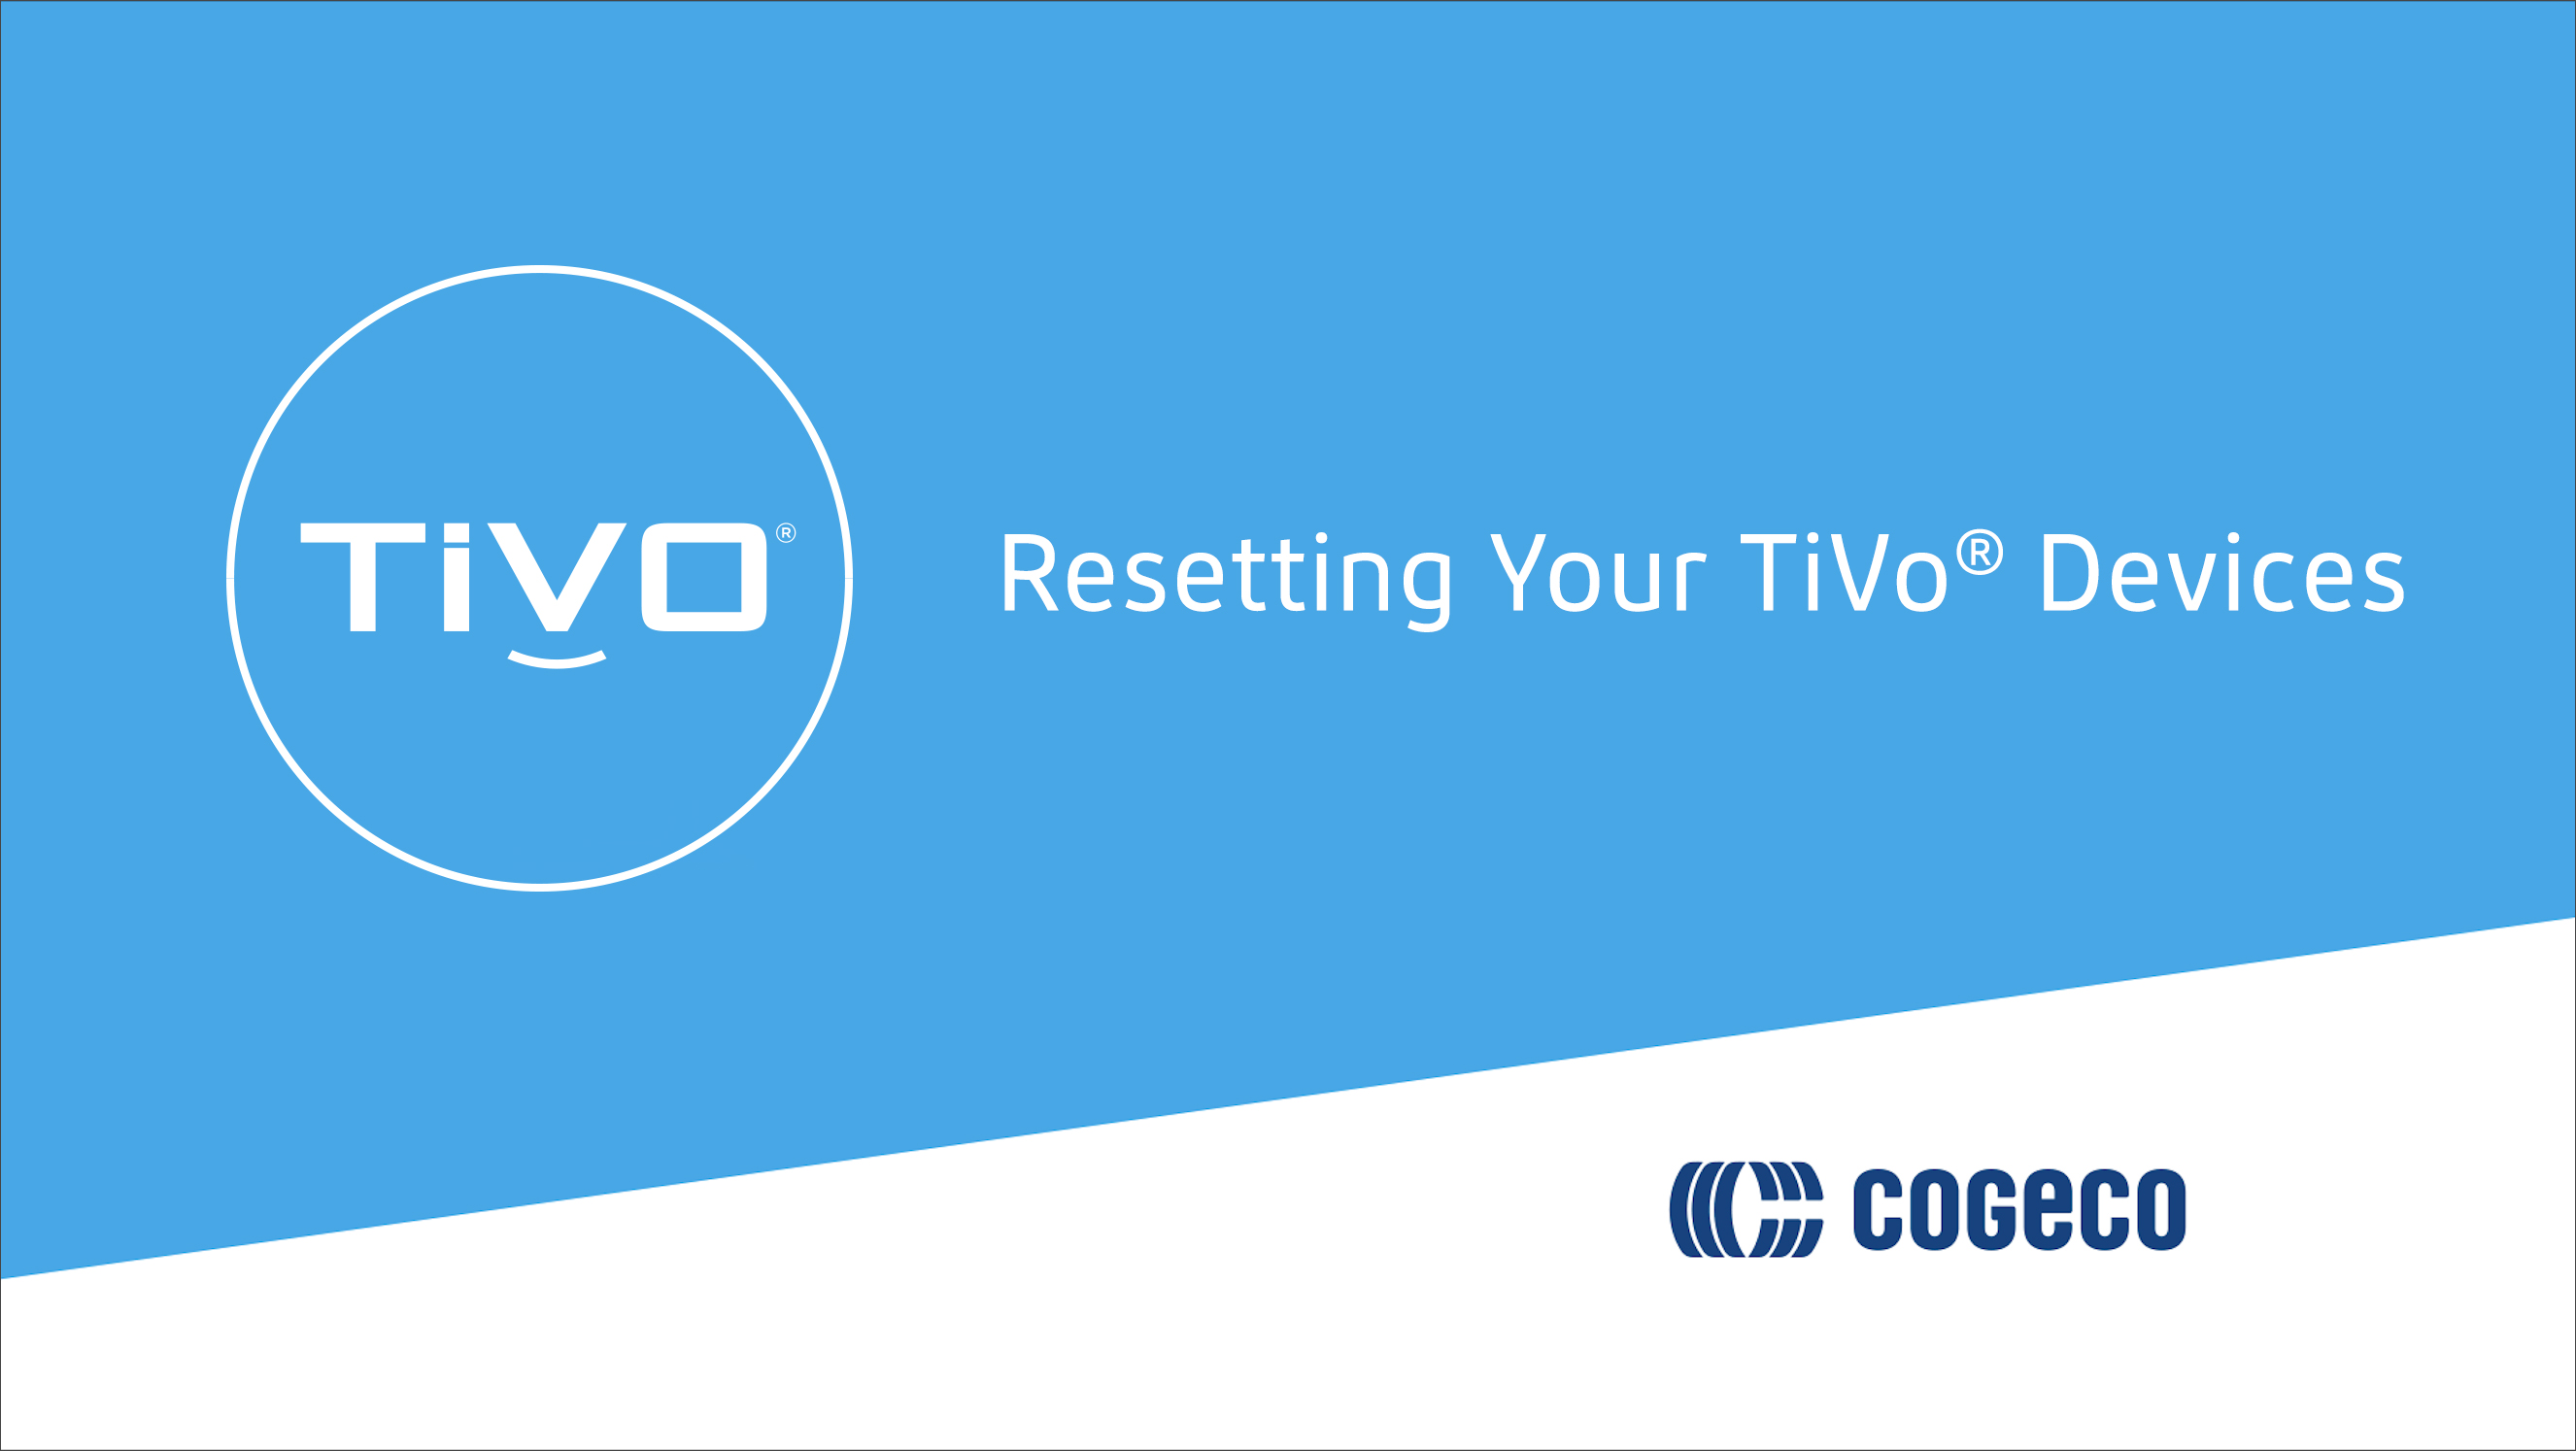 Resetting Your TiVo Devices